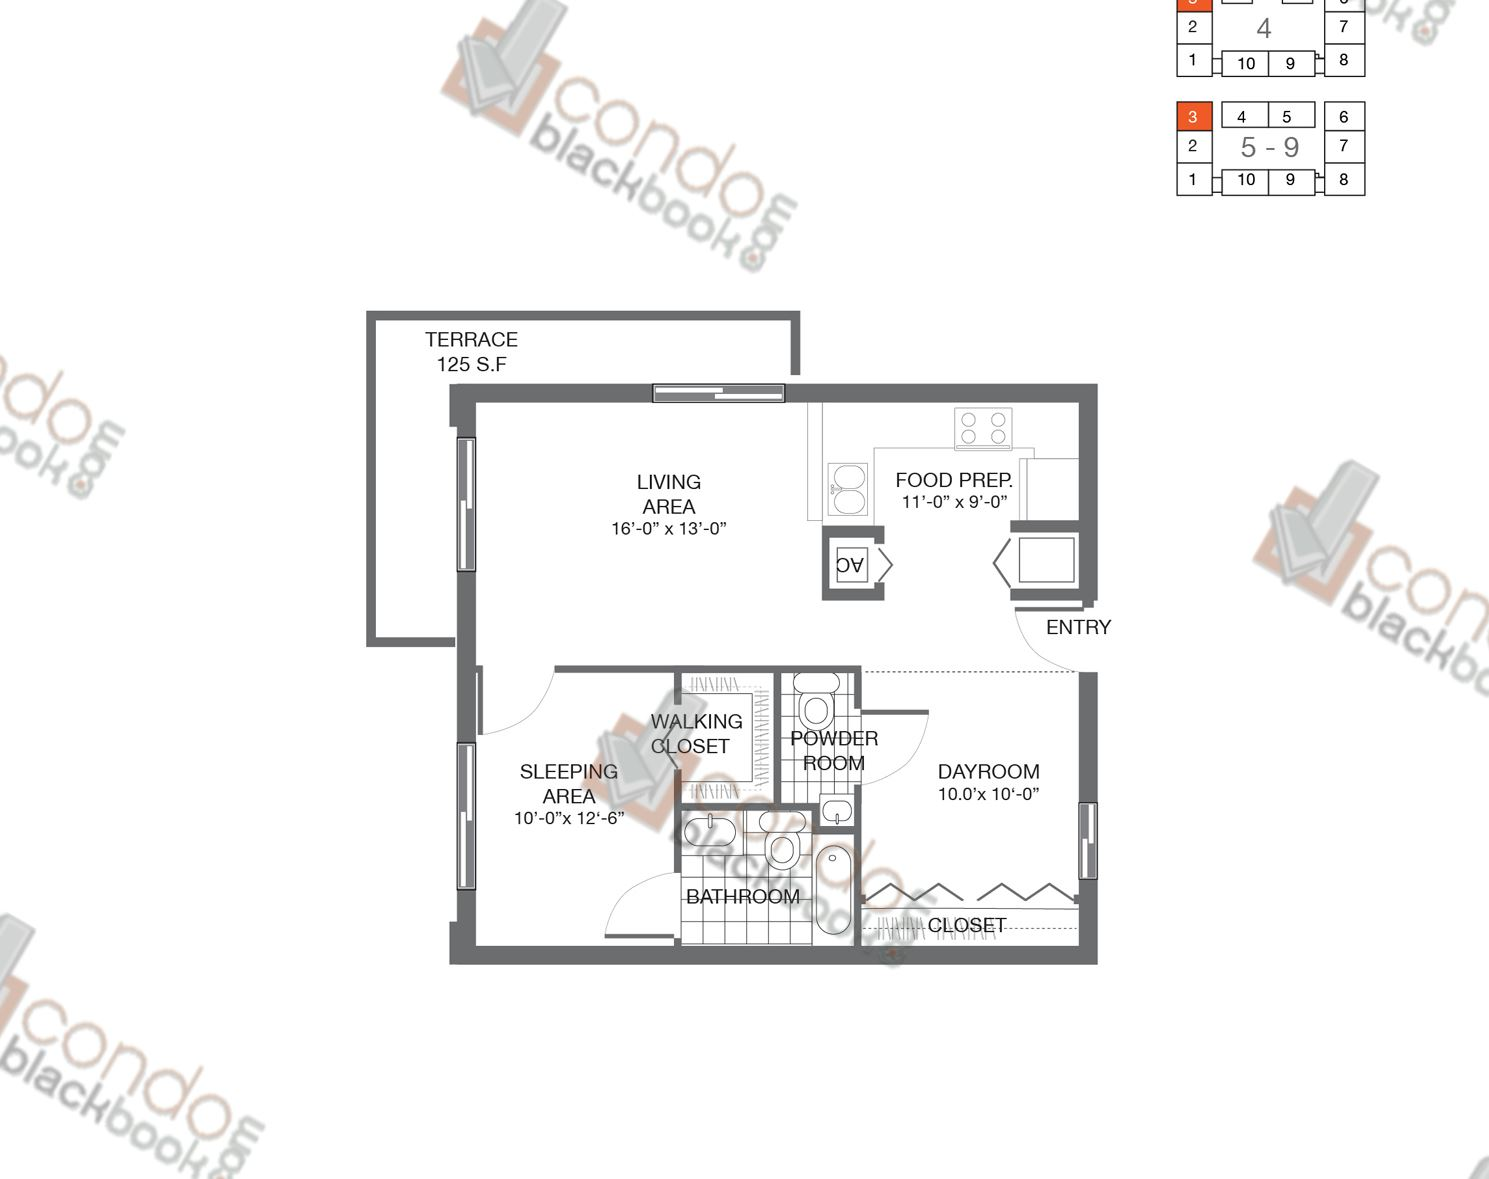 Floor plan for Bay Lofts Edgewater Miami, model Loft 3, line 03, 1/2 bedrooms, 822 sq ft